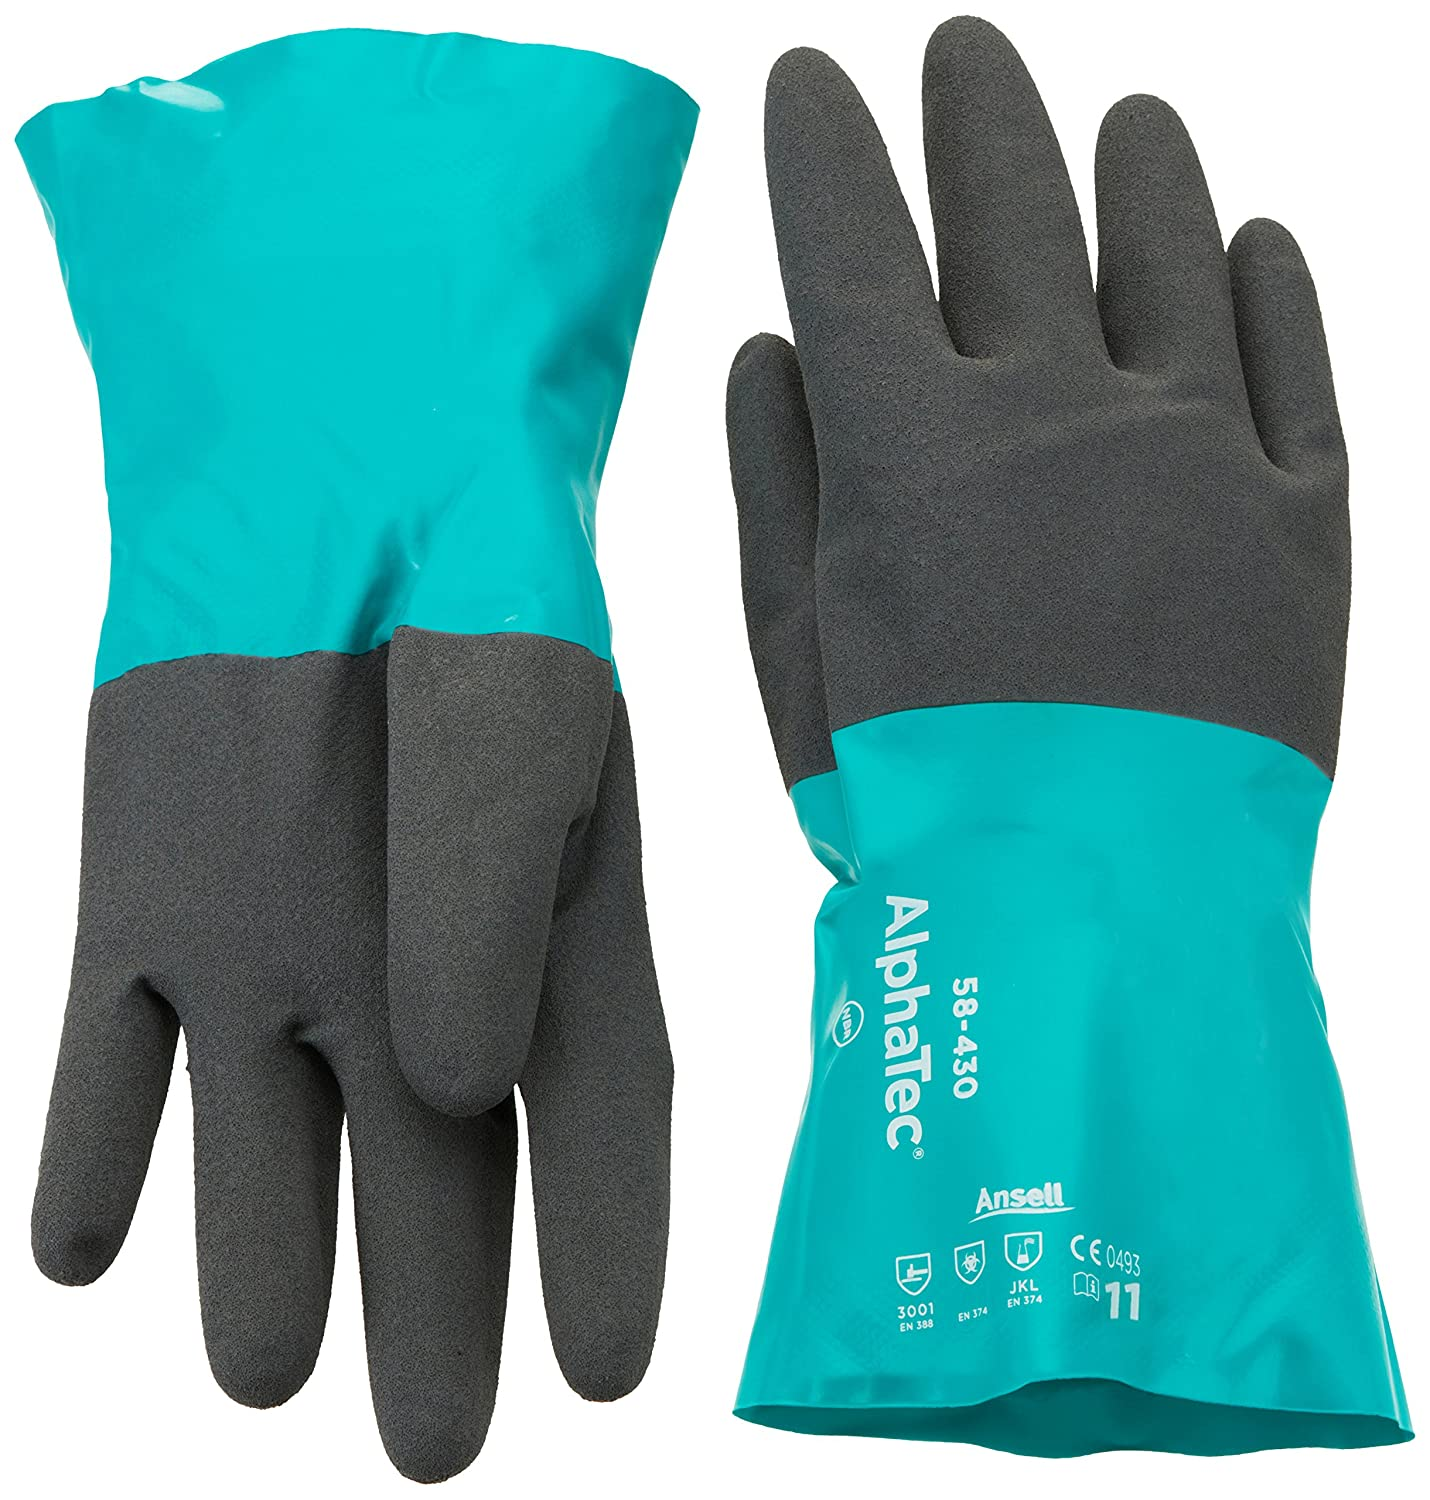 Ansell AlphaTec 58-430 Nitrile gloves, chemical & liquid protection, Green, Size 7 (Pack of 12 pairs) Ansell AlphaTec 58-430 / 7